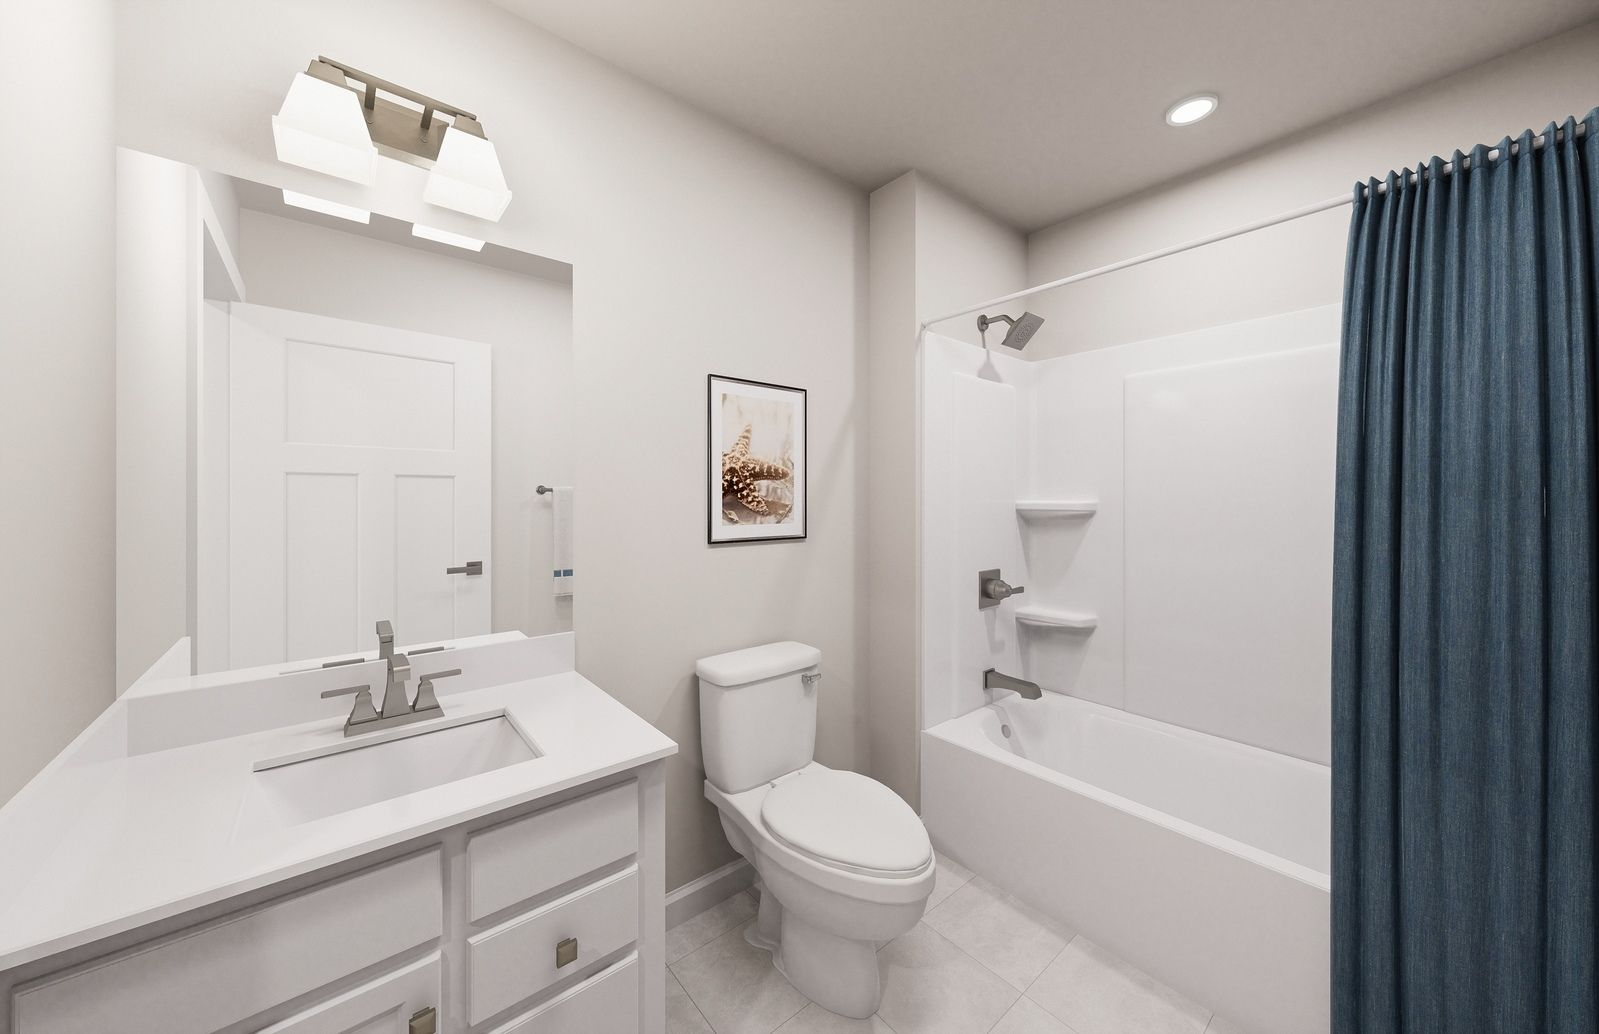 Bathroom featured in the Eden Cay By Ryan Homes in Sussex County, NJ